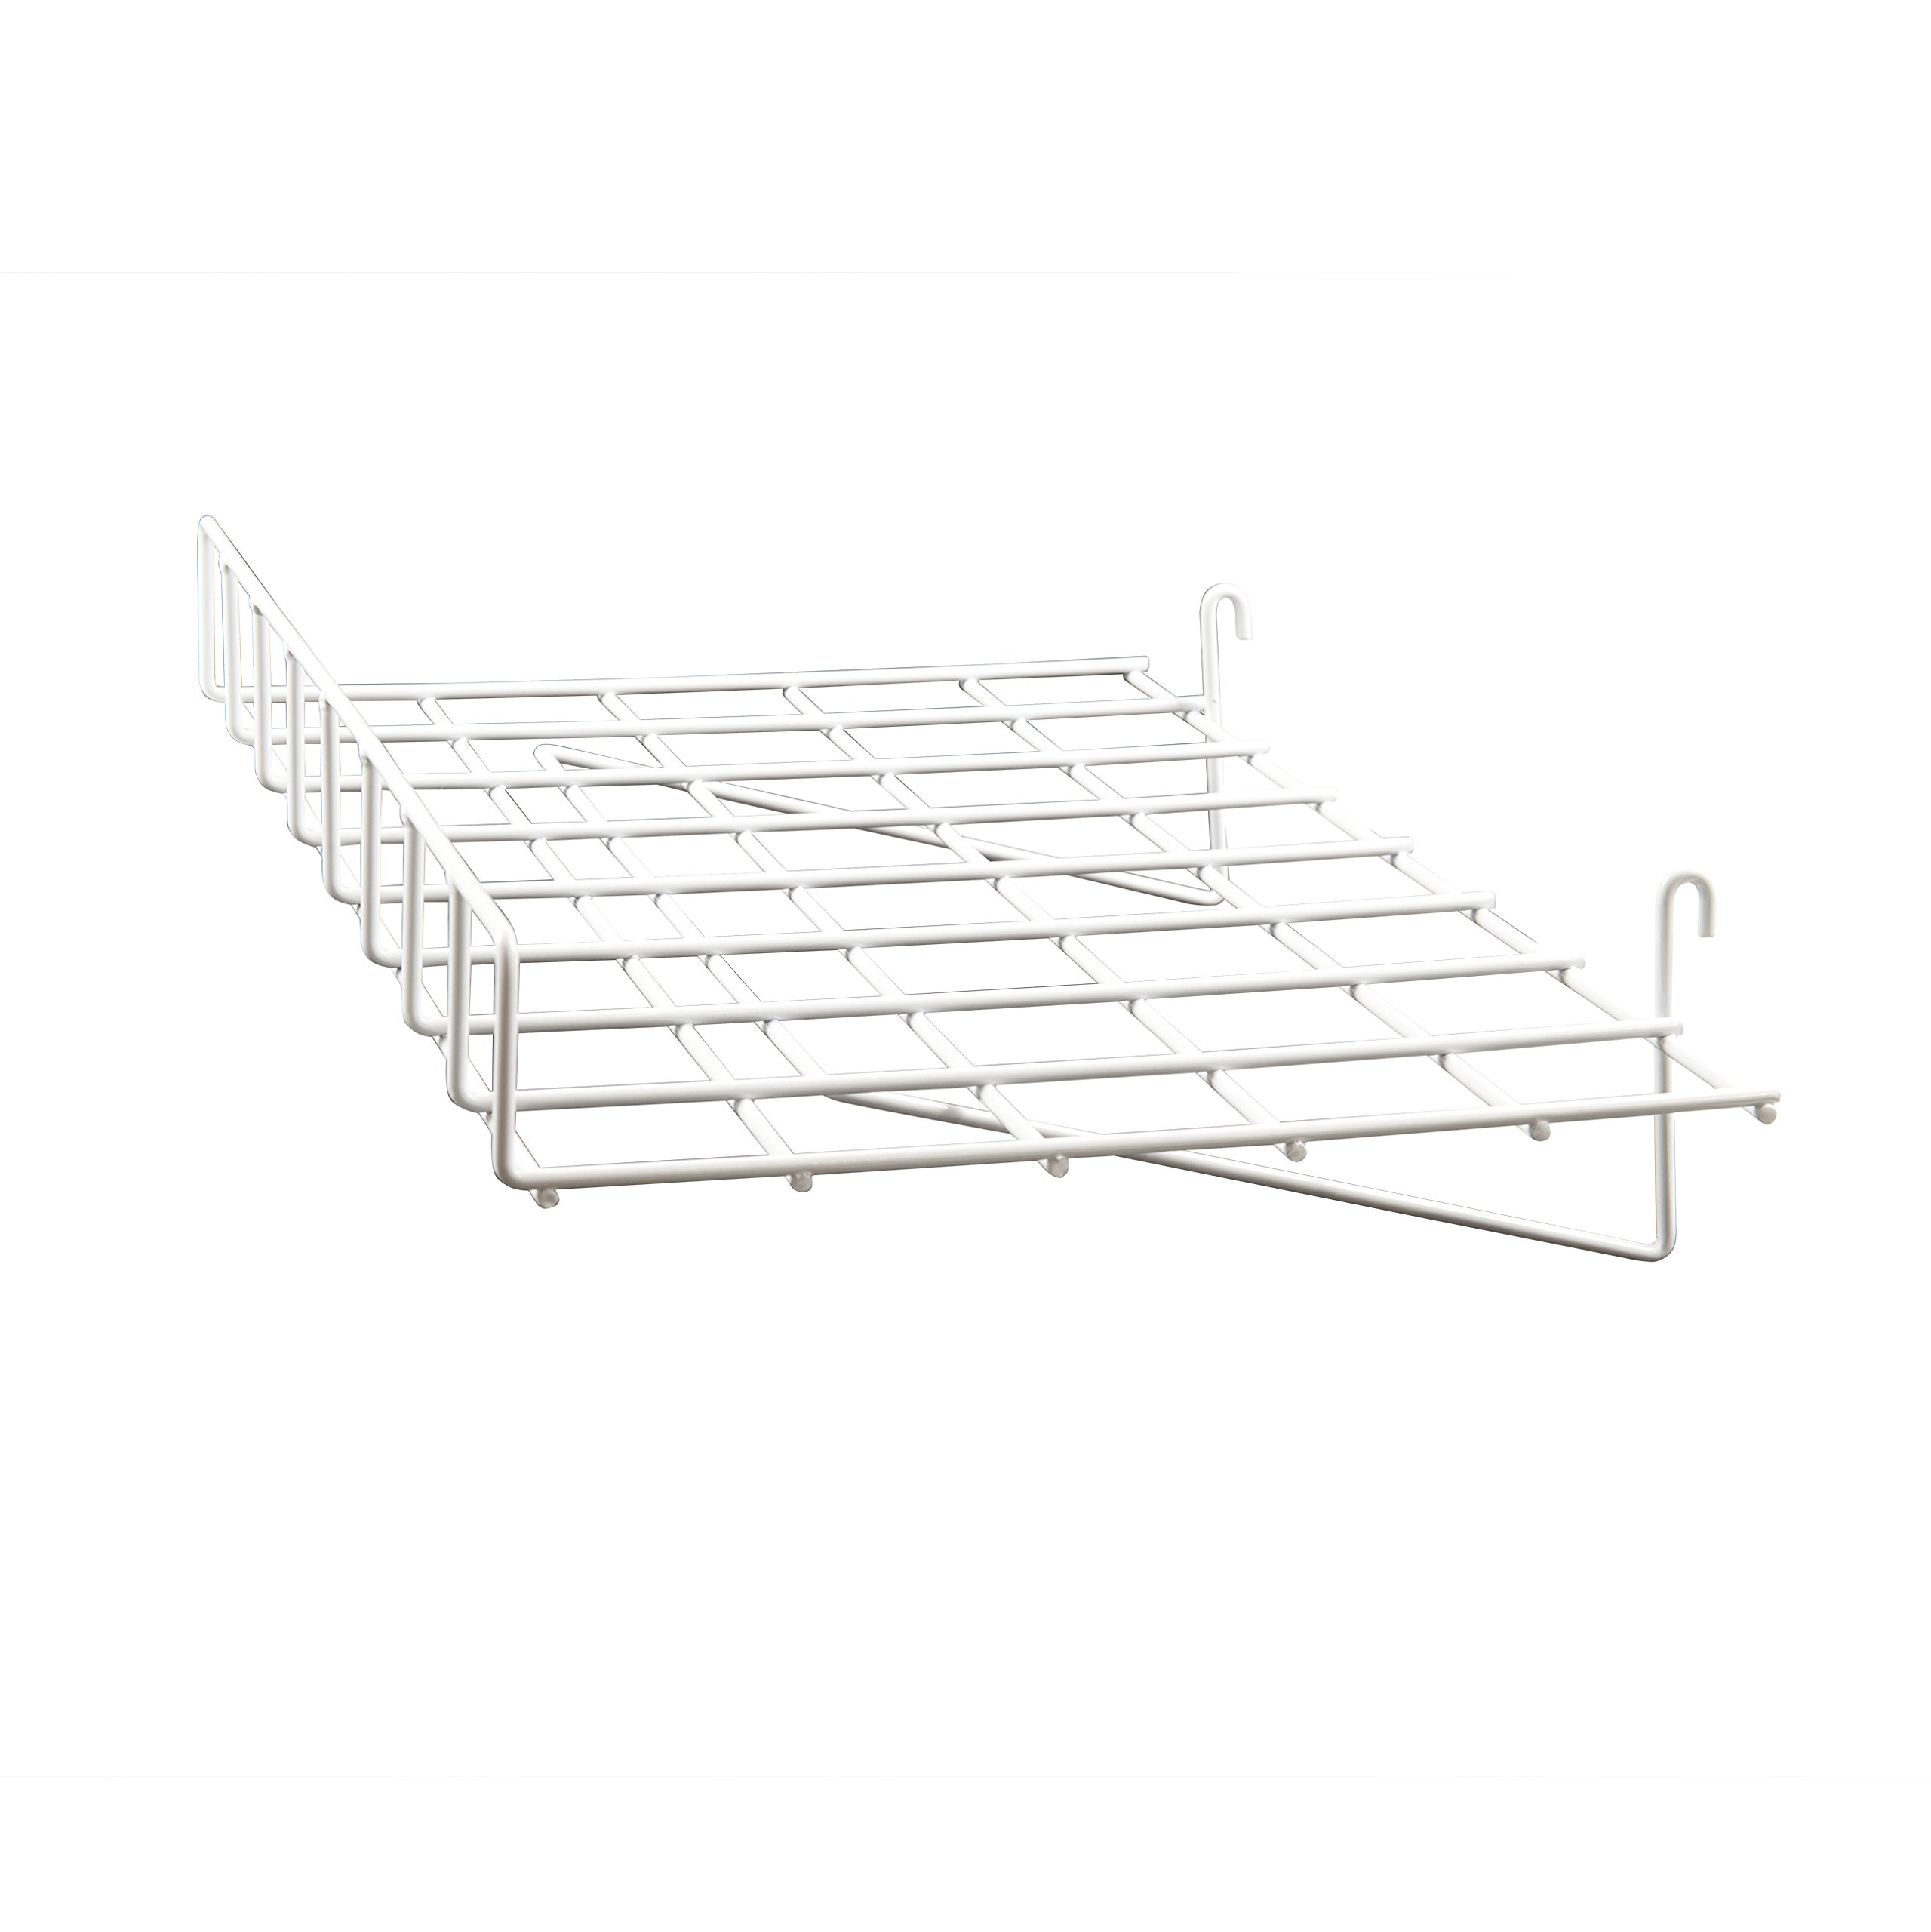 Econoco WTES/93 Straight Shelf with Front Lip, 24'' Length x 15'' Depth, White (Pack of 4)